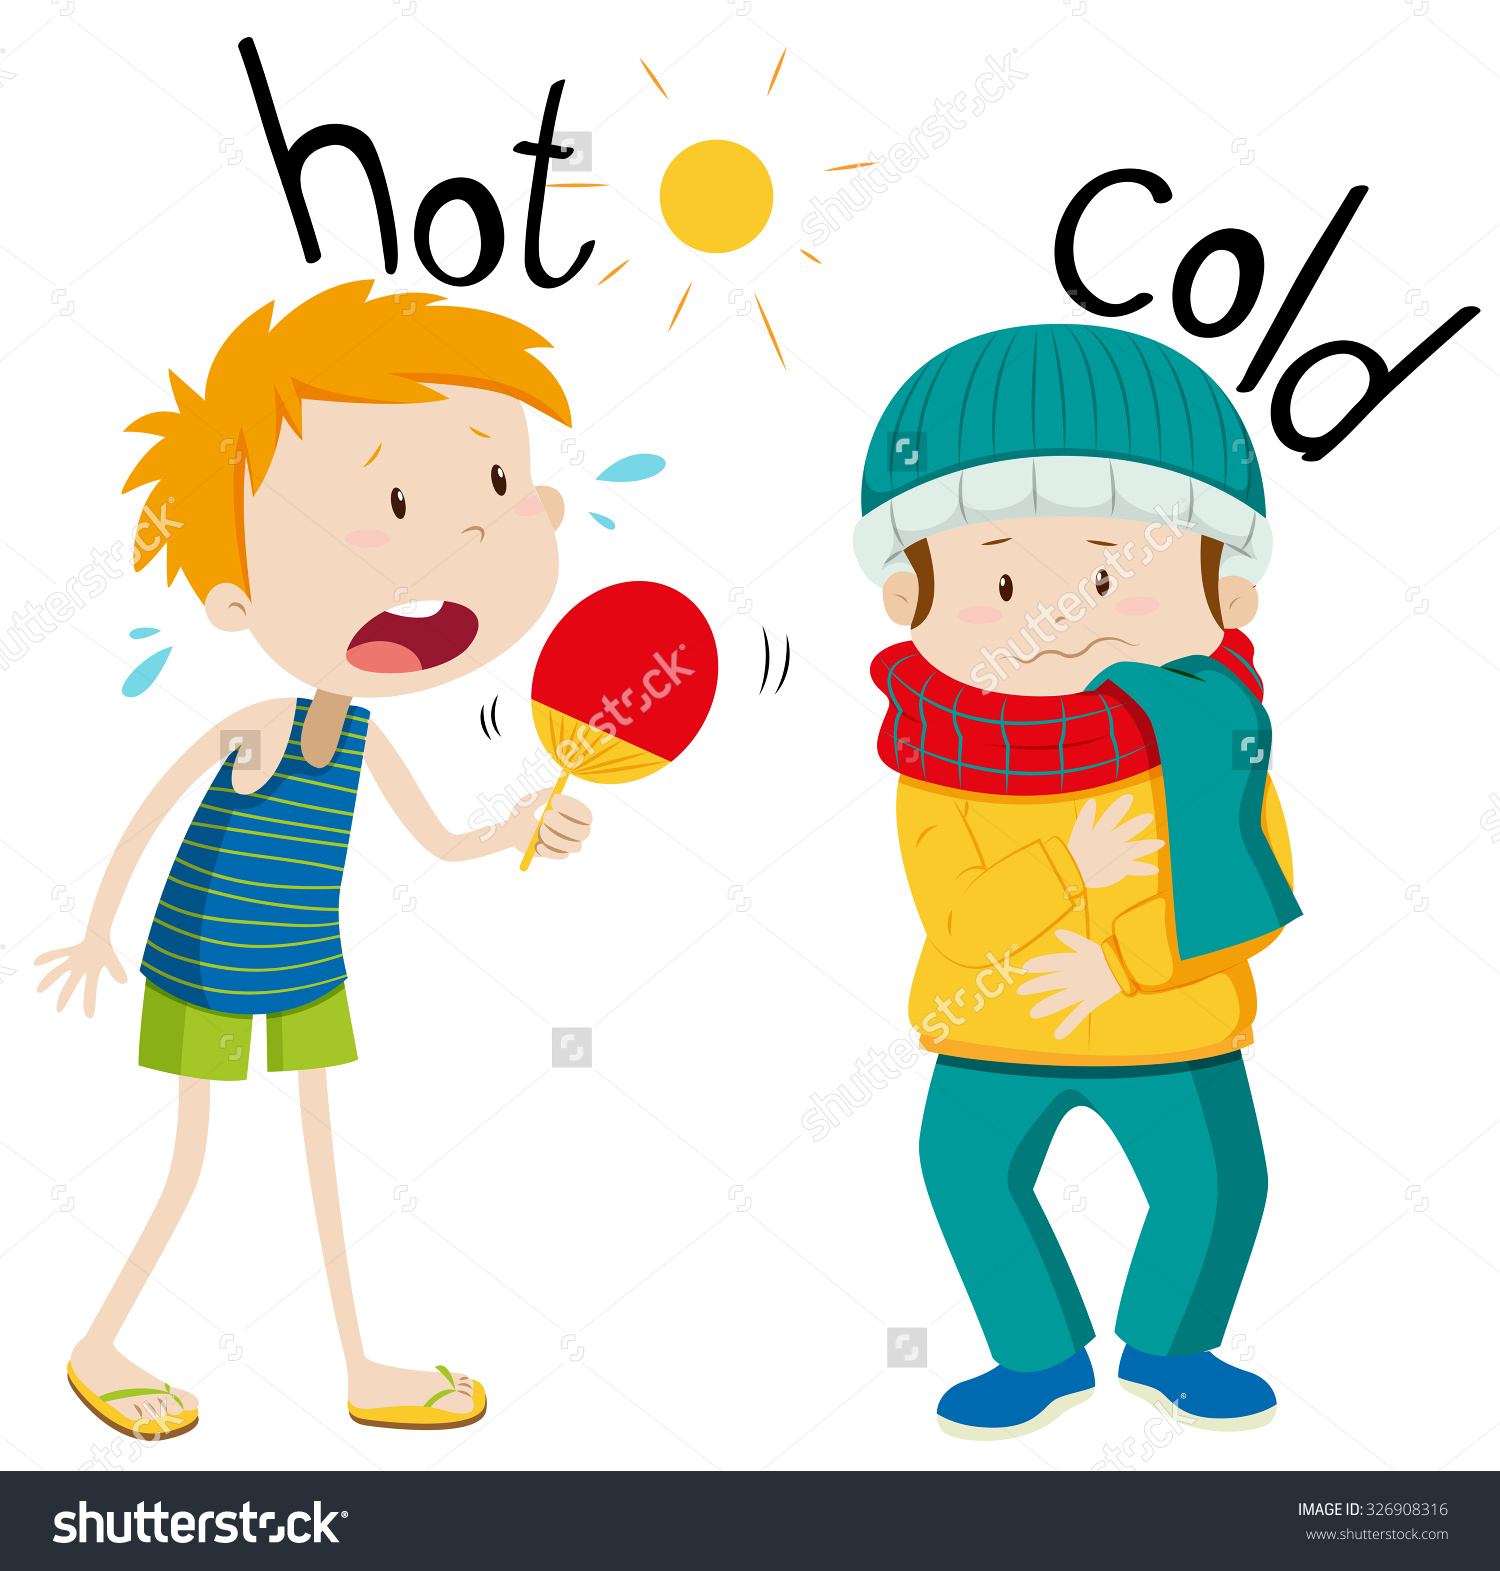 Hot and cold clipart.